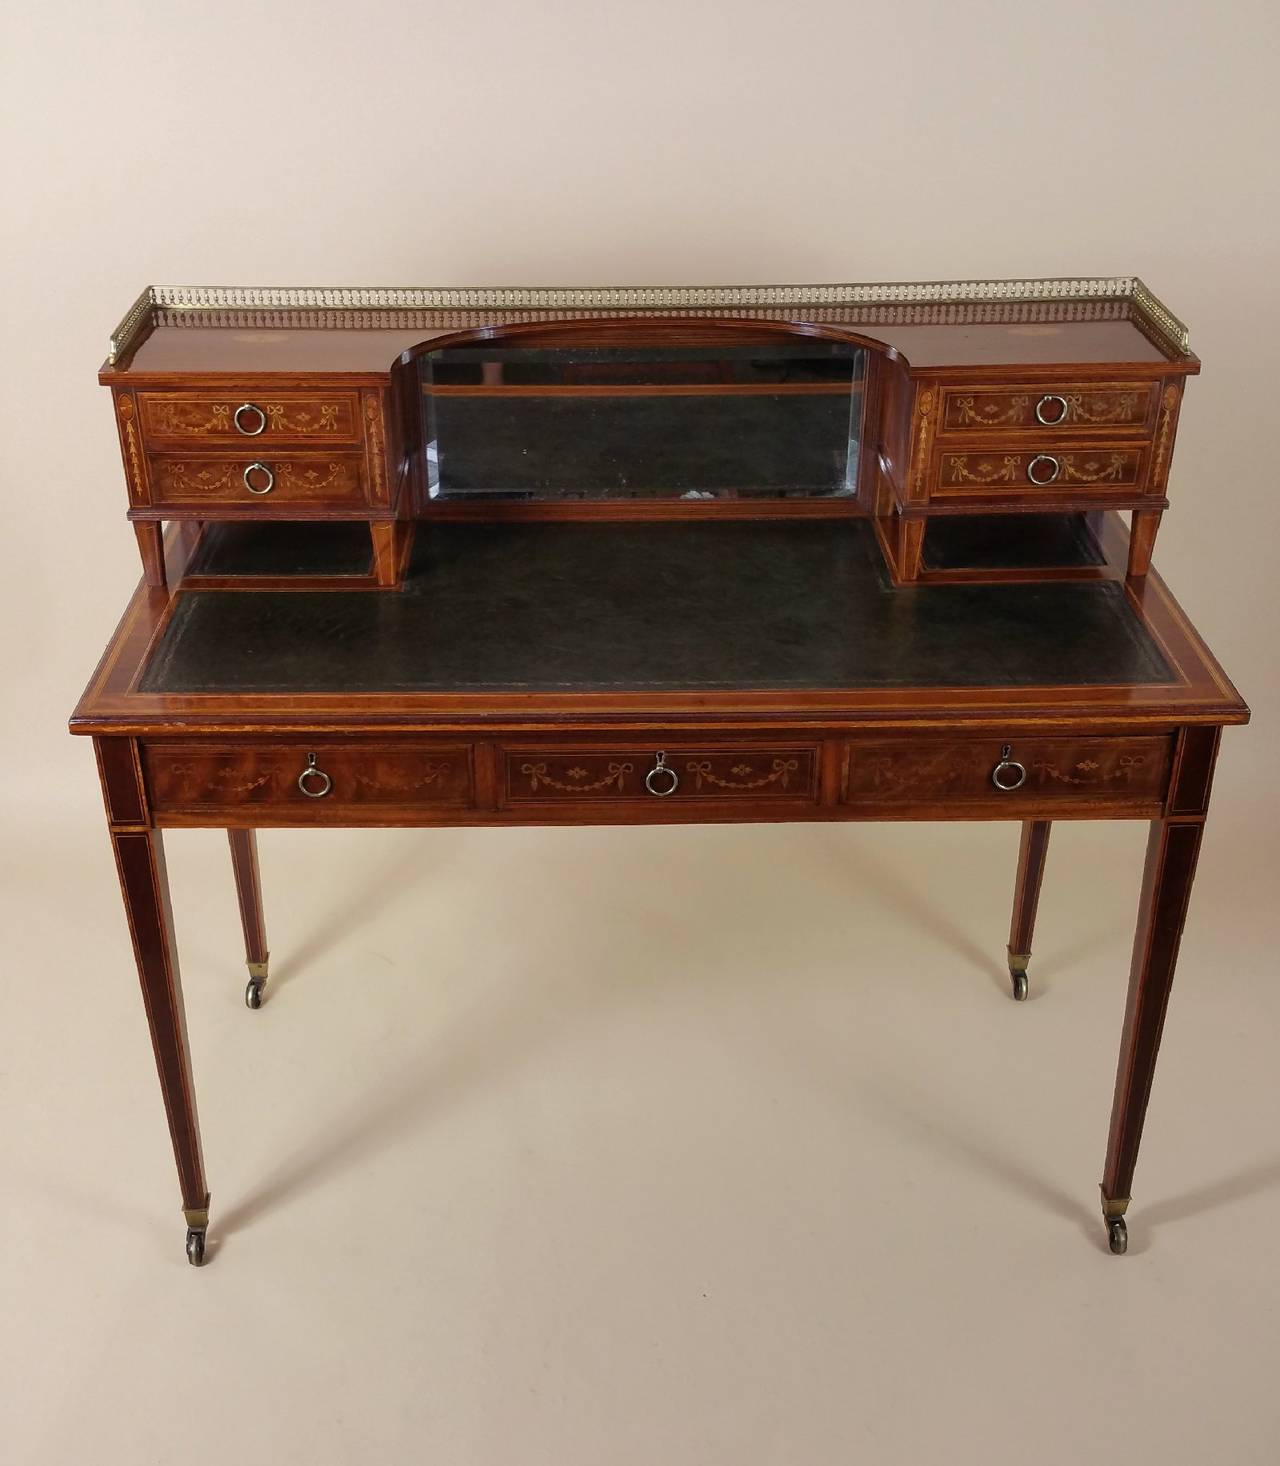 This Gorgeous Victorian Gany Writing Table Features Satinwood Inlaid Marquetry And Stringing Detail A